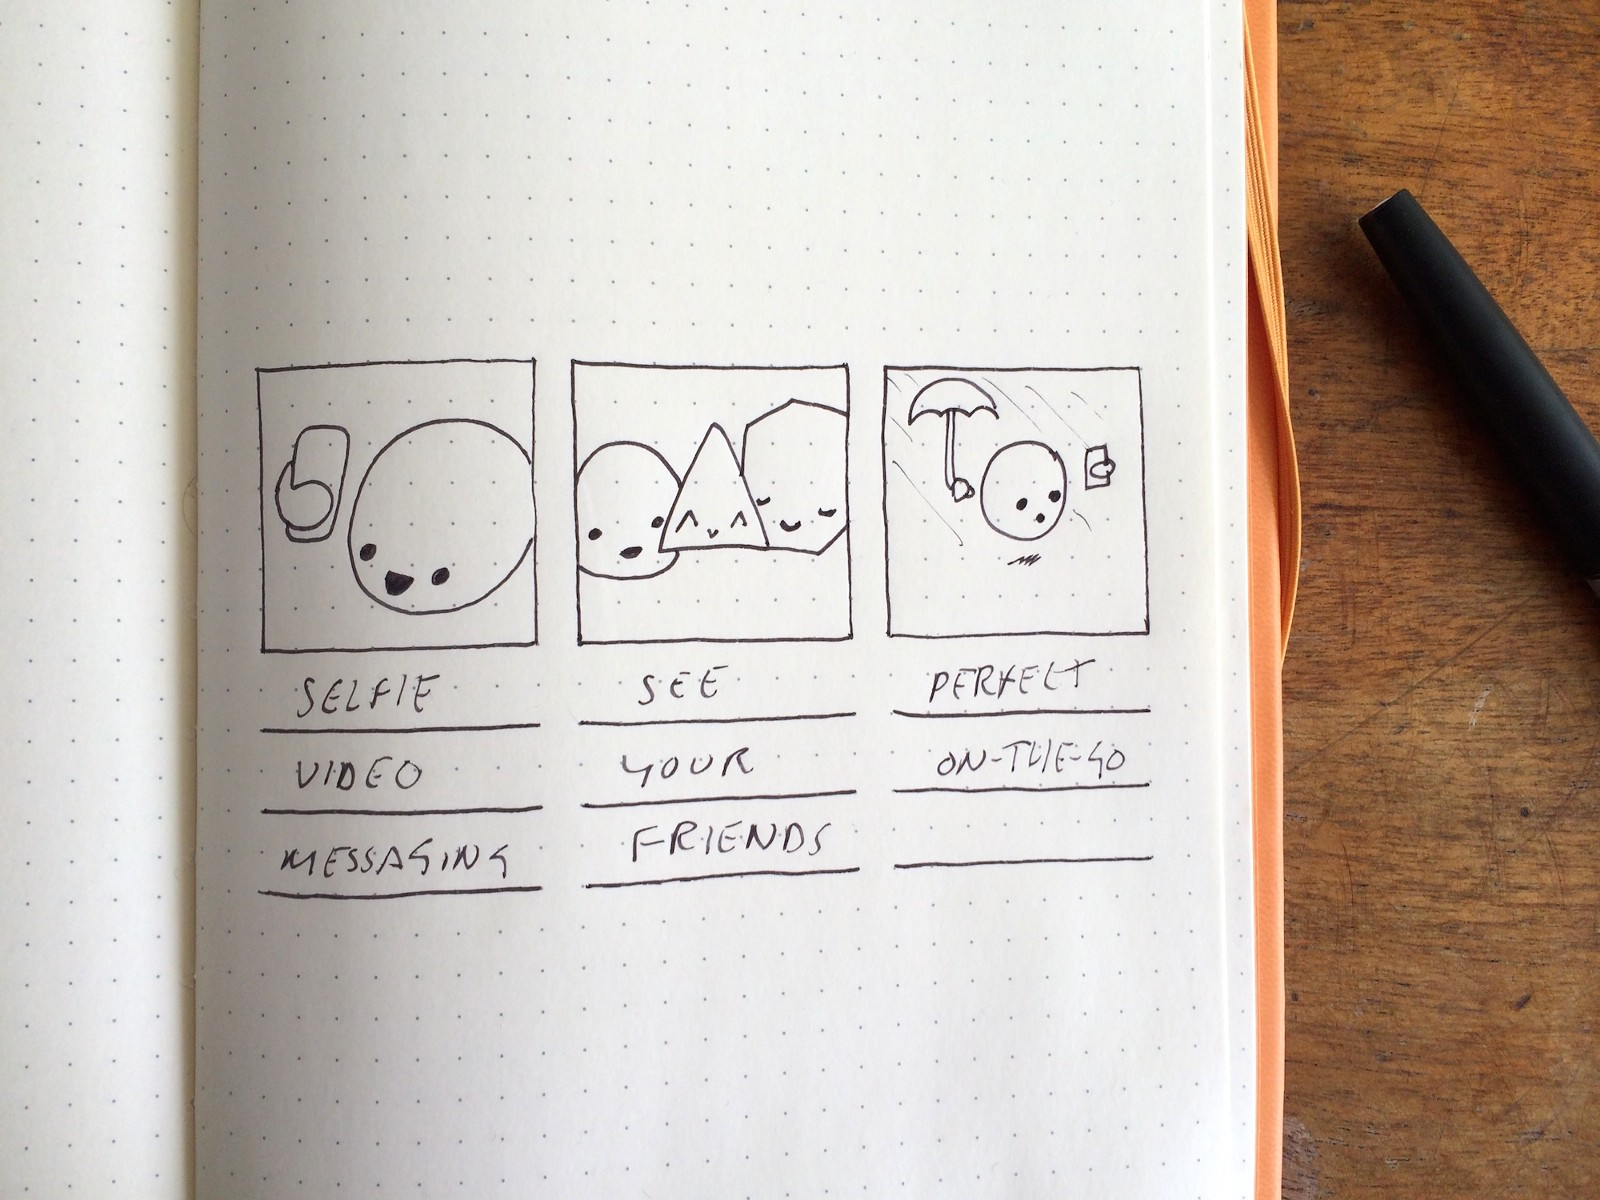 Write better walkthroughs with the 3x3 Method